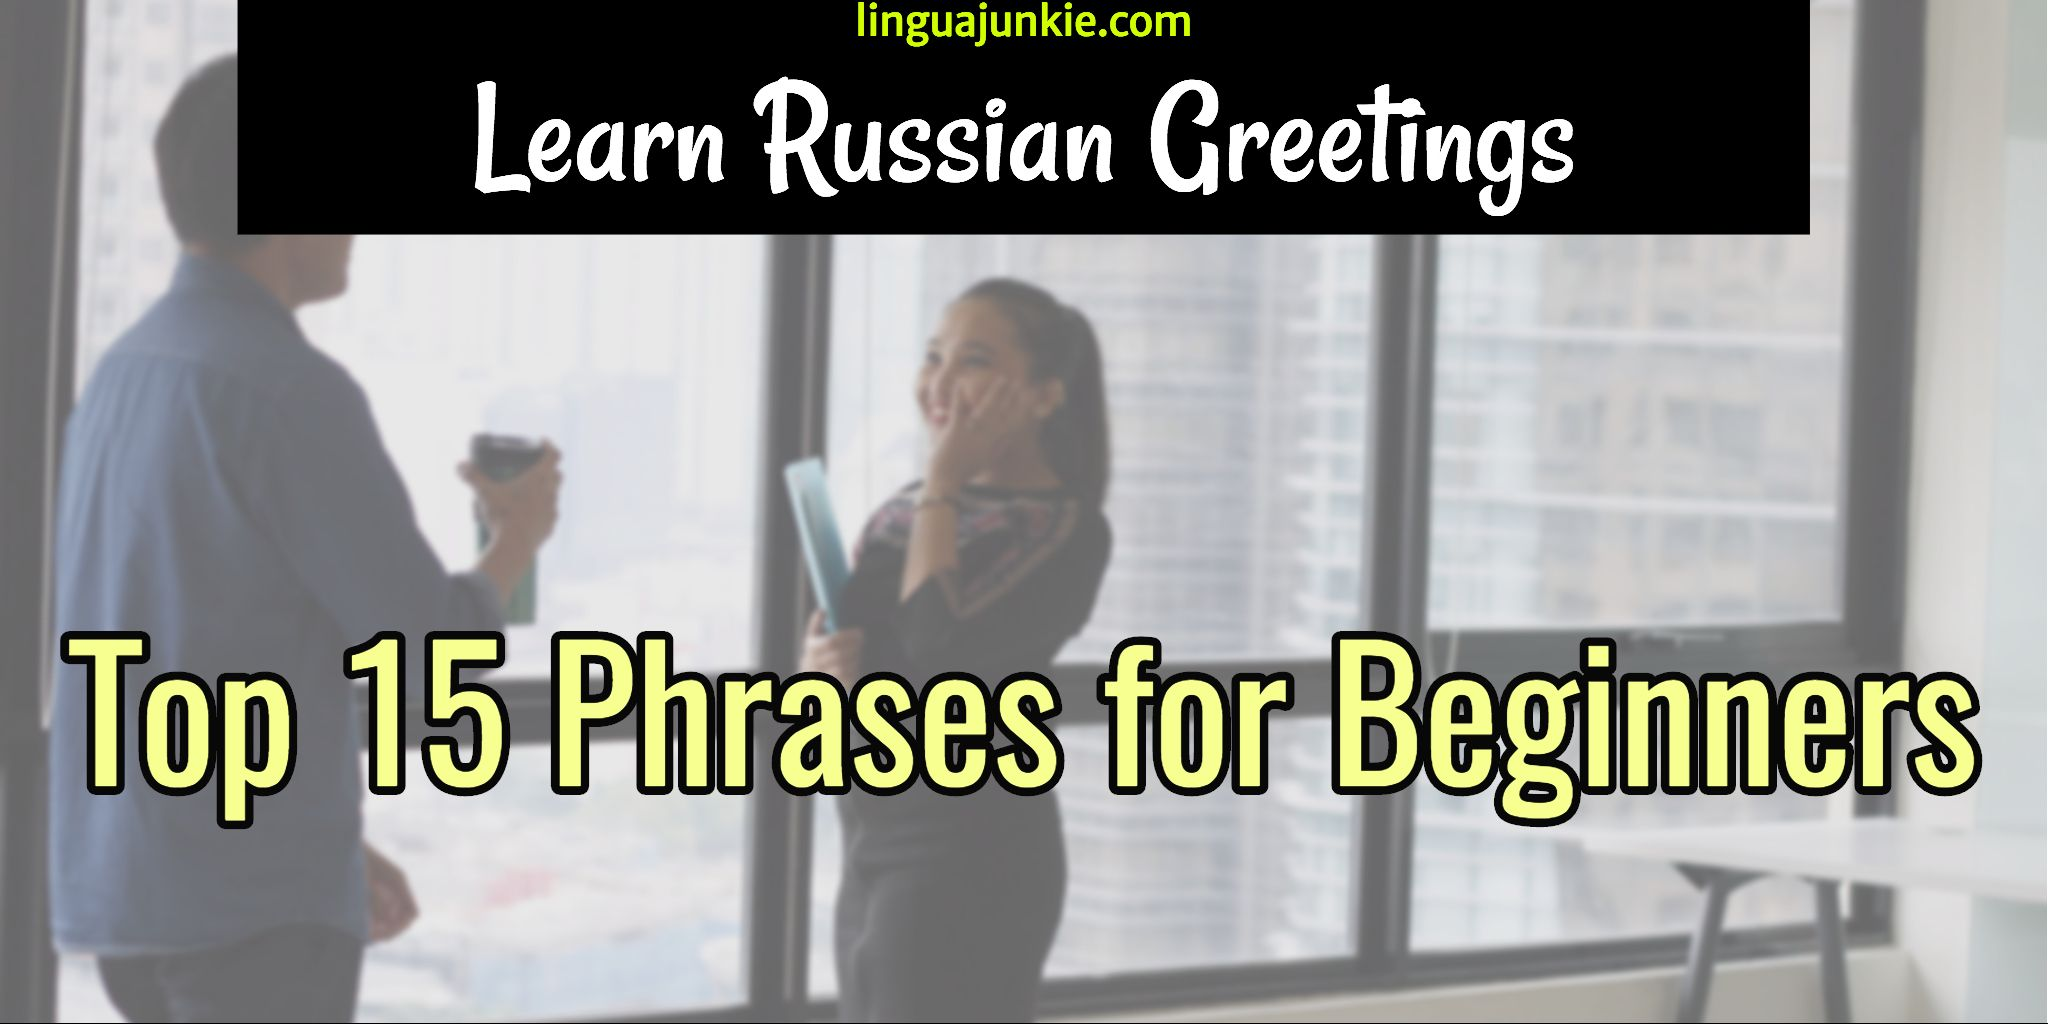 Russian Lesson Top 15 Russian Greetings For Beginners Languages